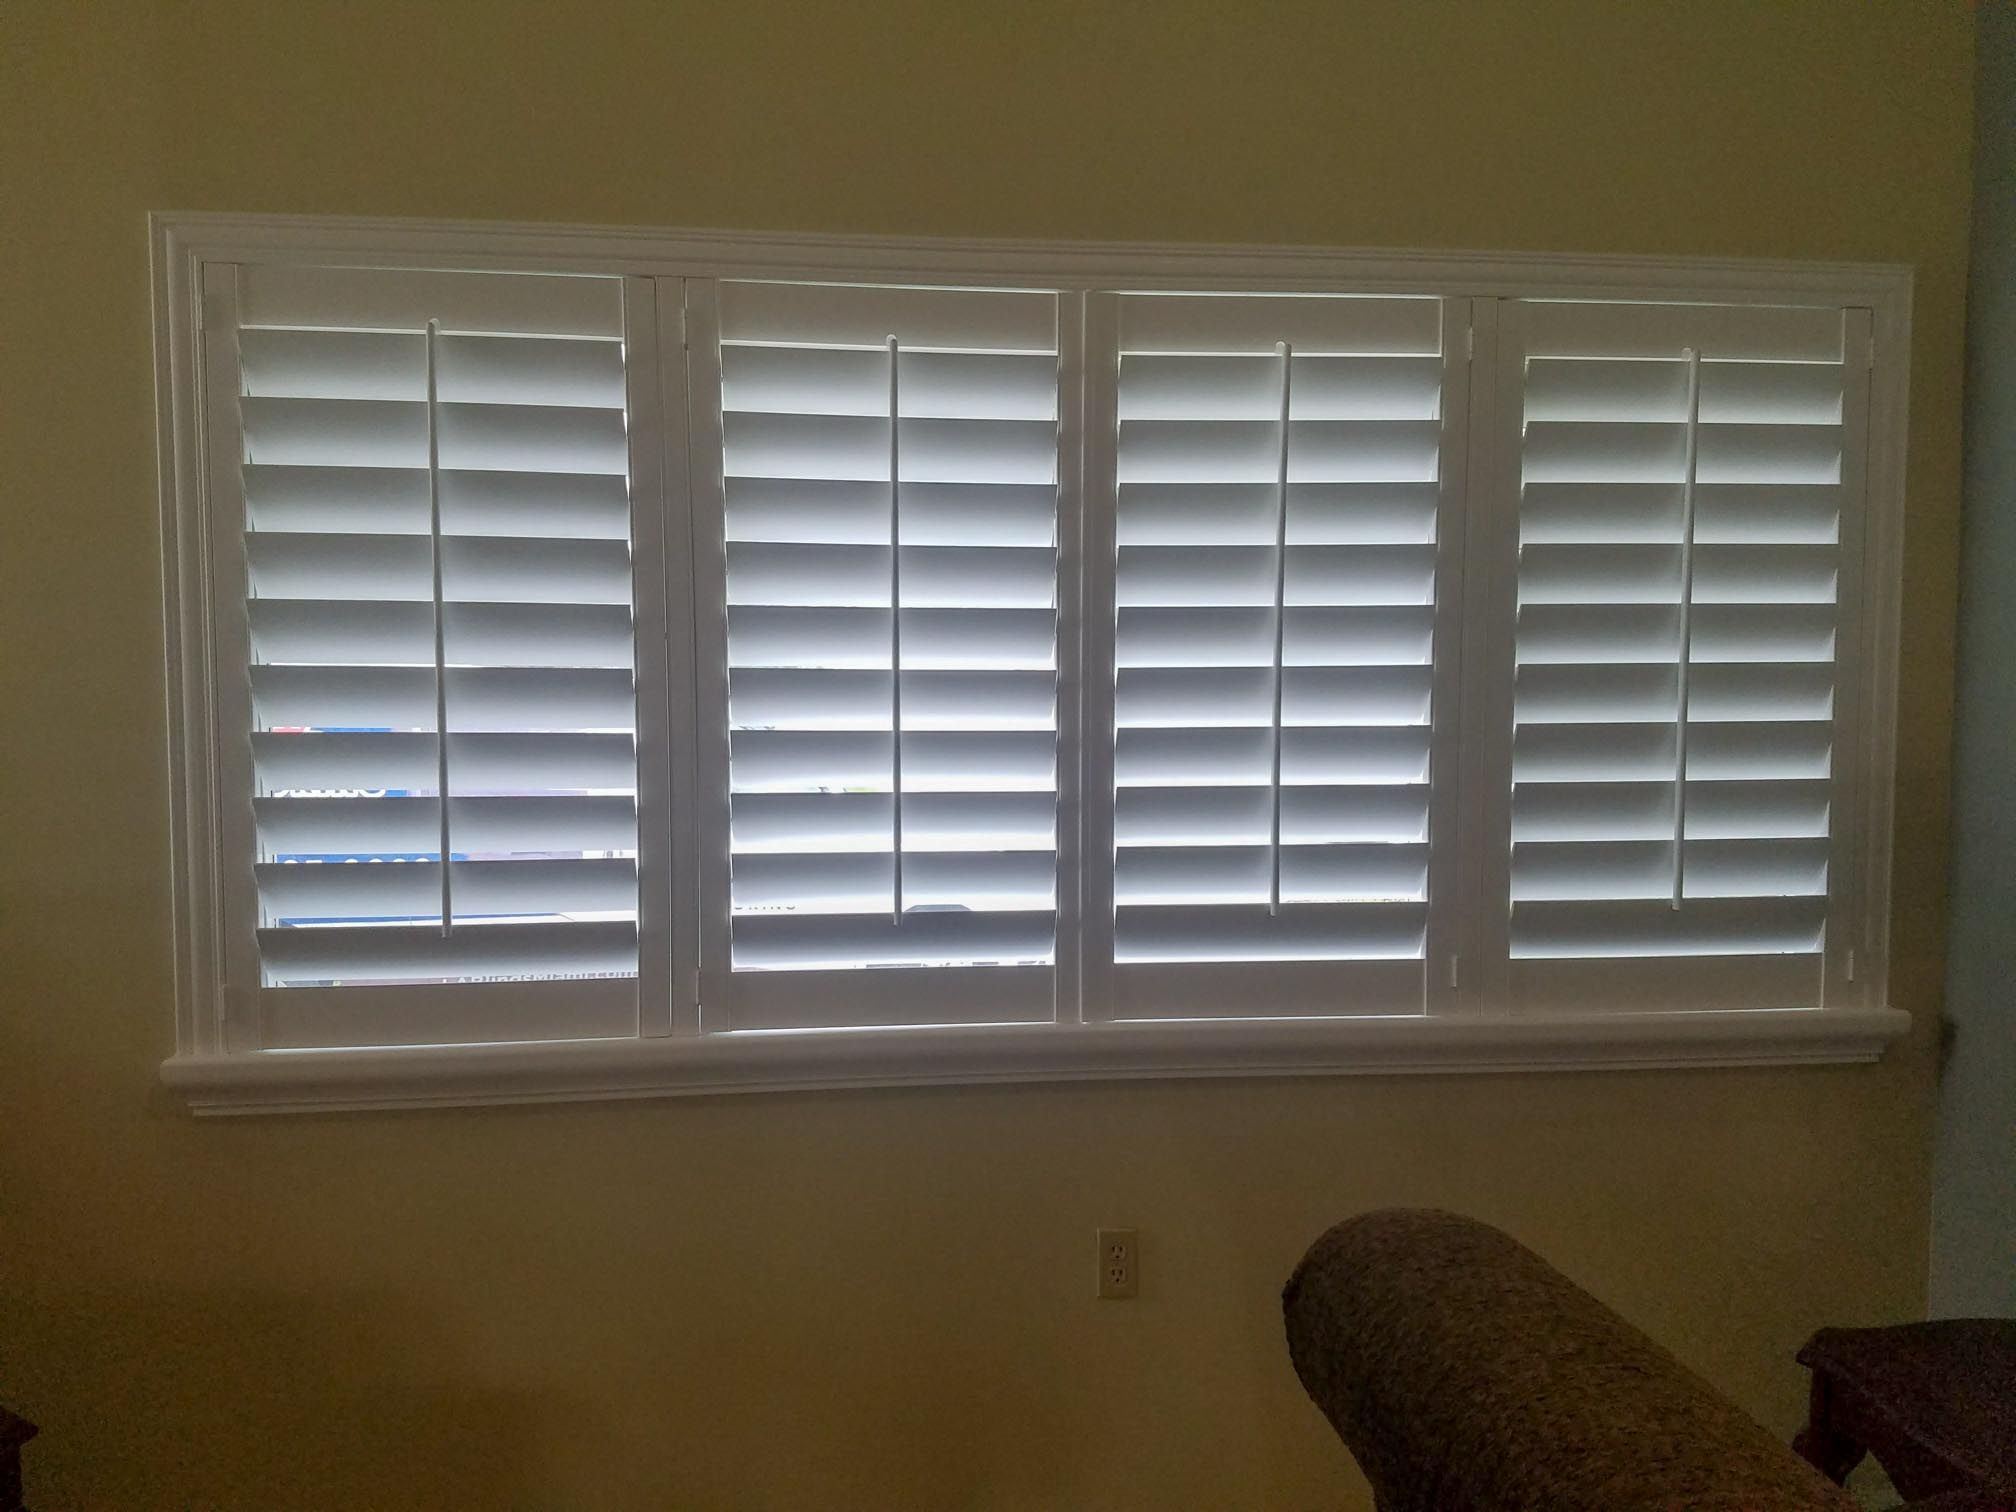 plantation shutters gallery PLANTATION SHUTTERS GALLERY 20180203 113320